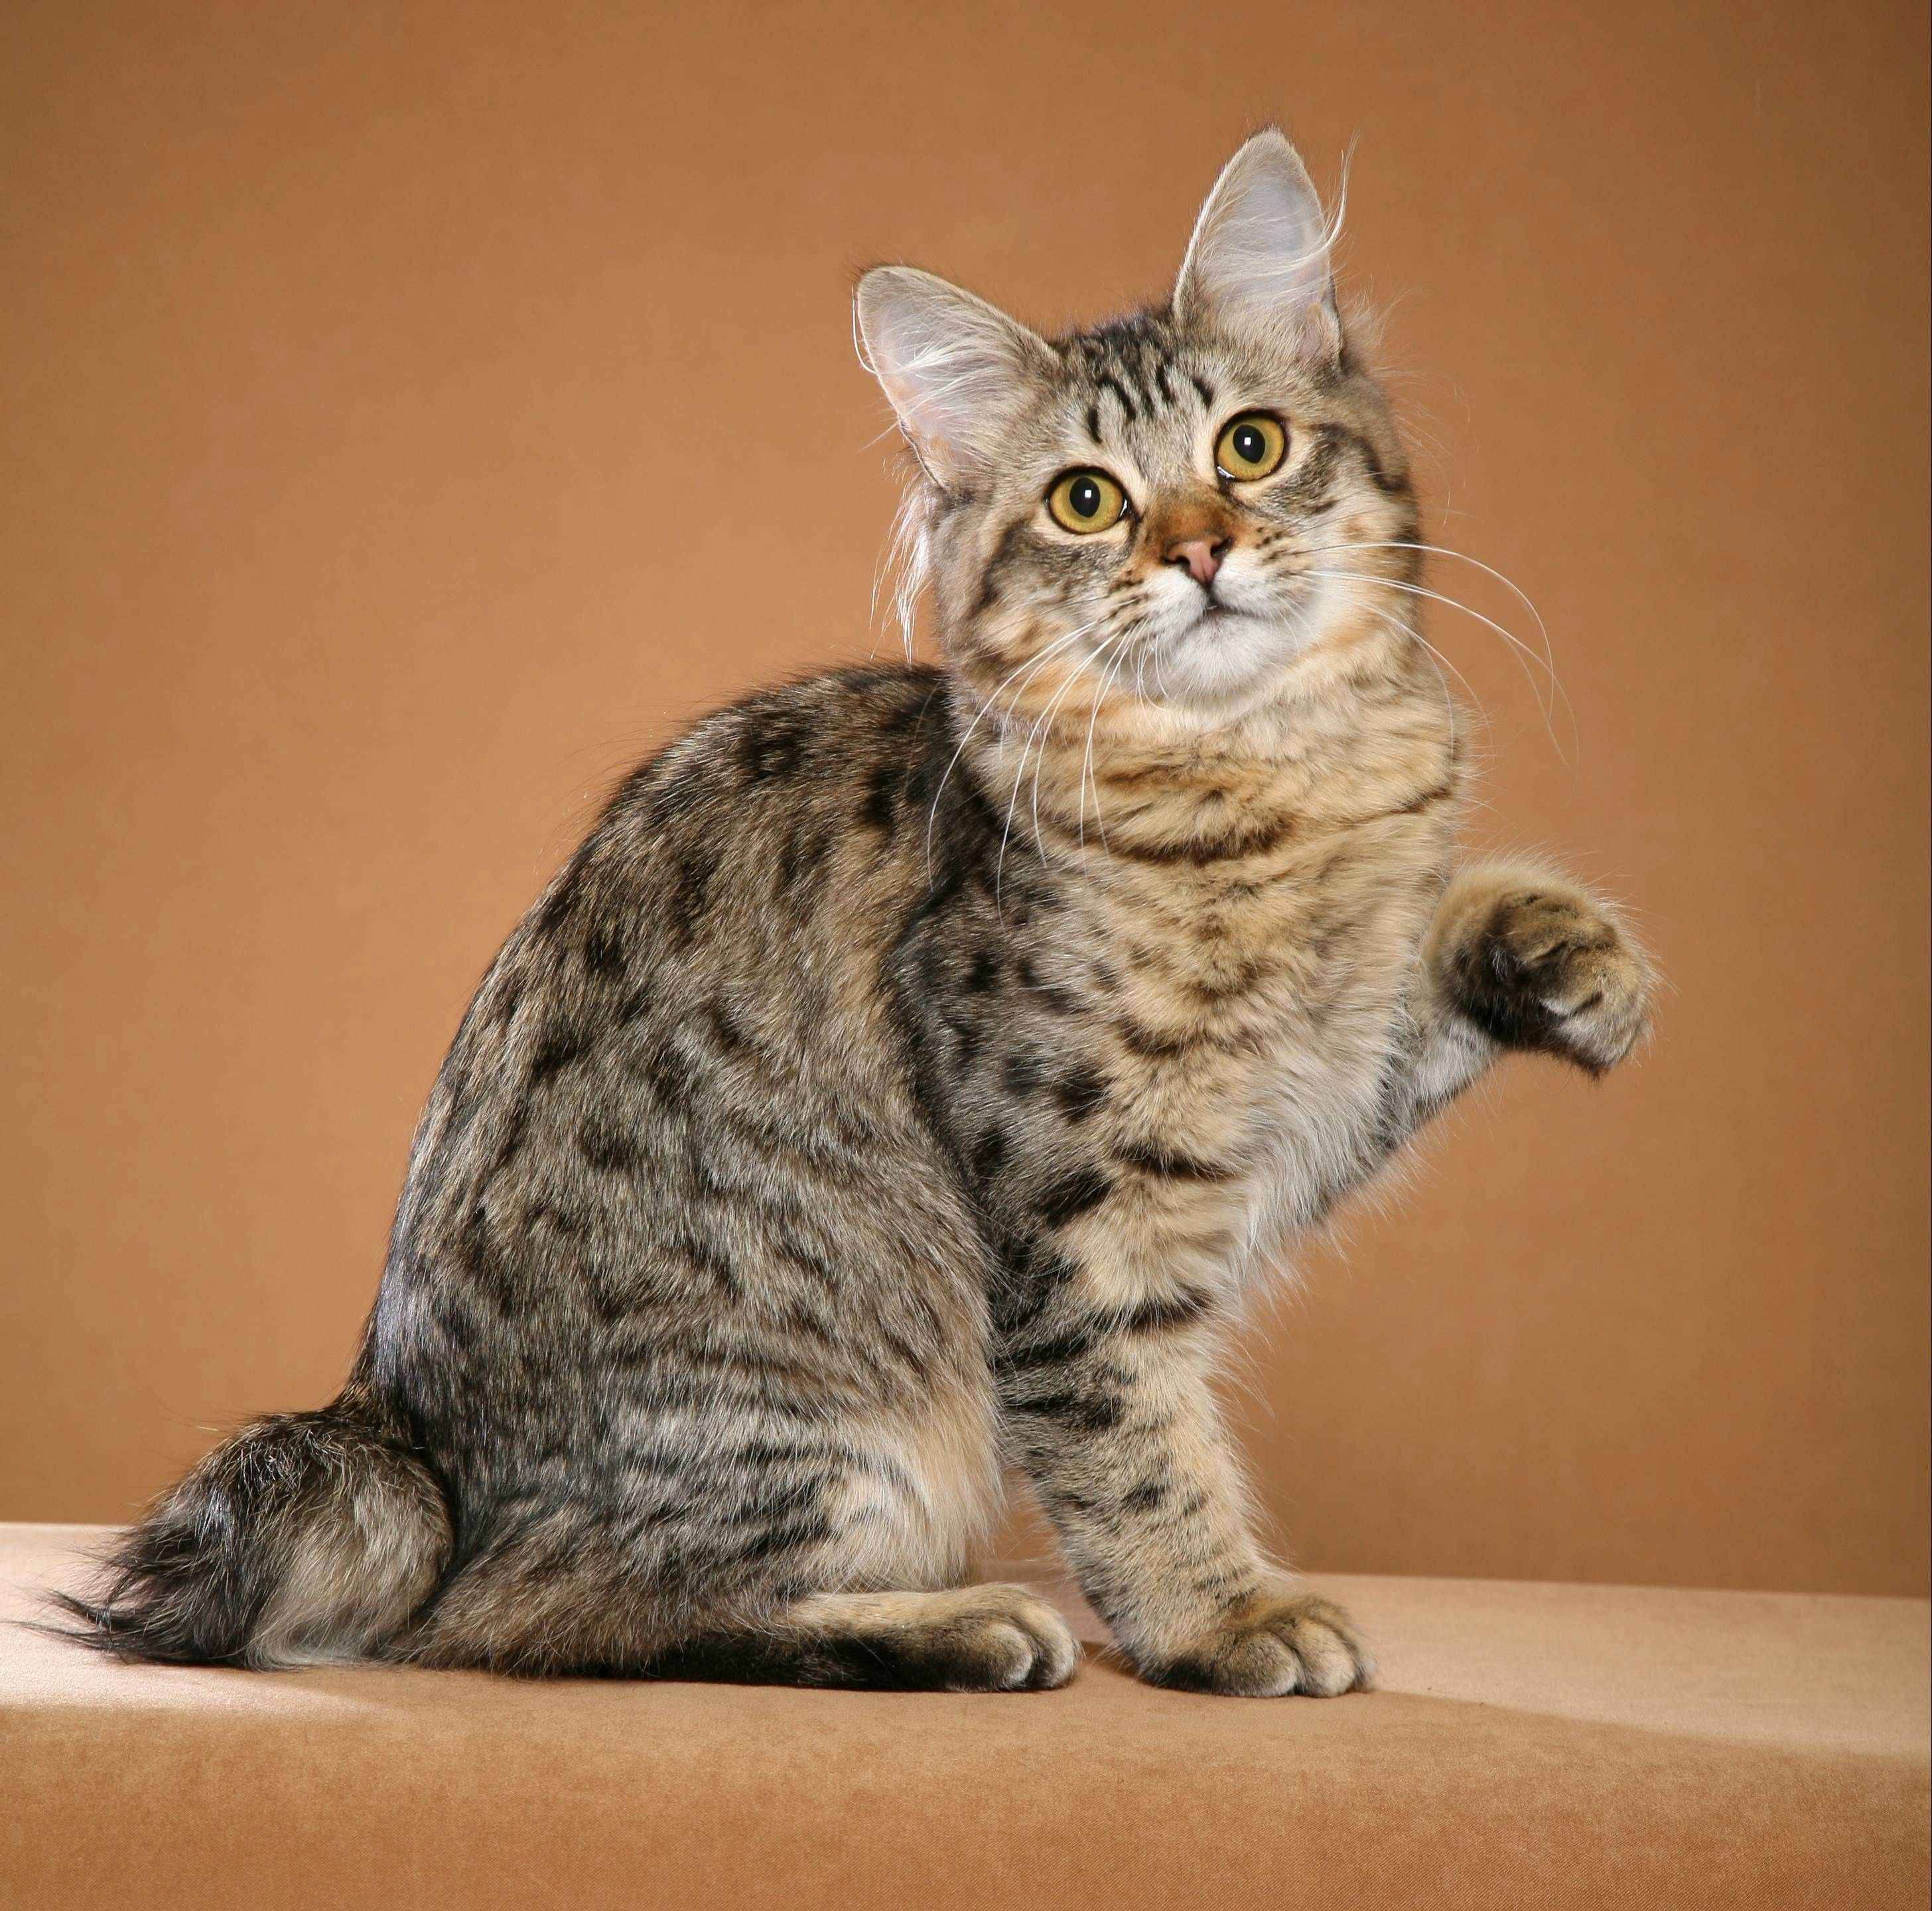 The American Bobtail Is An Uncommon Breed Of Domestic Cat Which Was Developed In The Late 1960s It Is American Bobtail Cat Bobtail Cat American Shorthair Cat